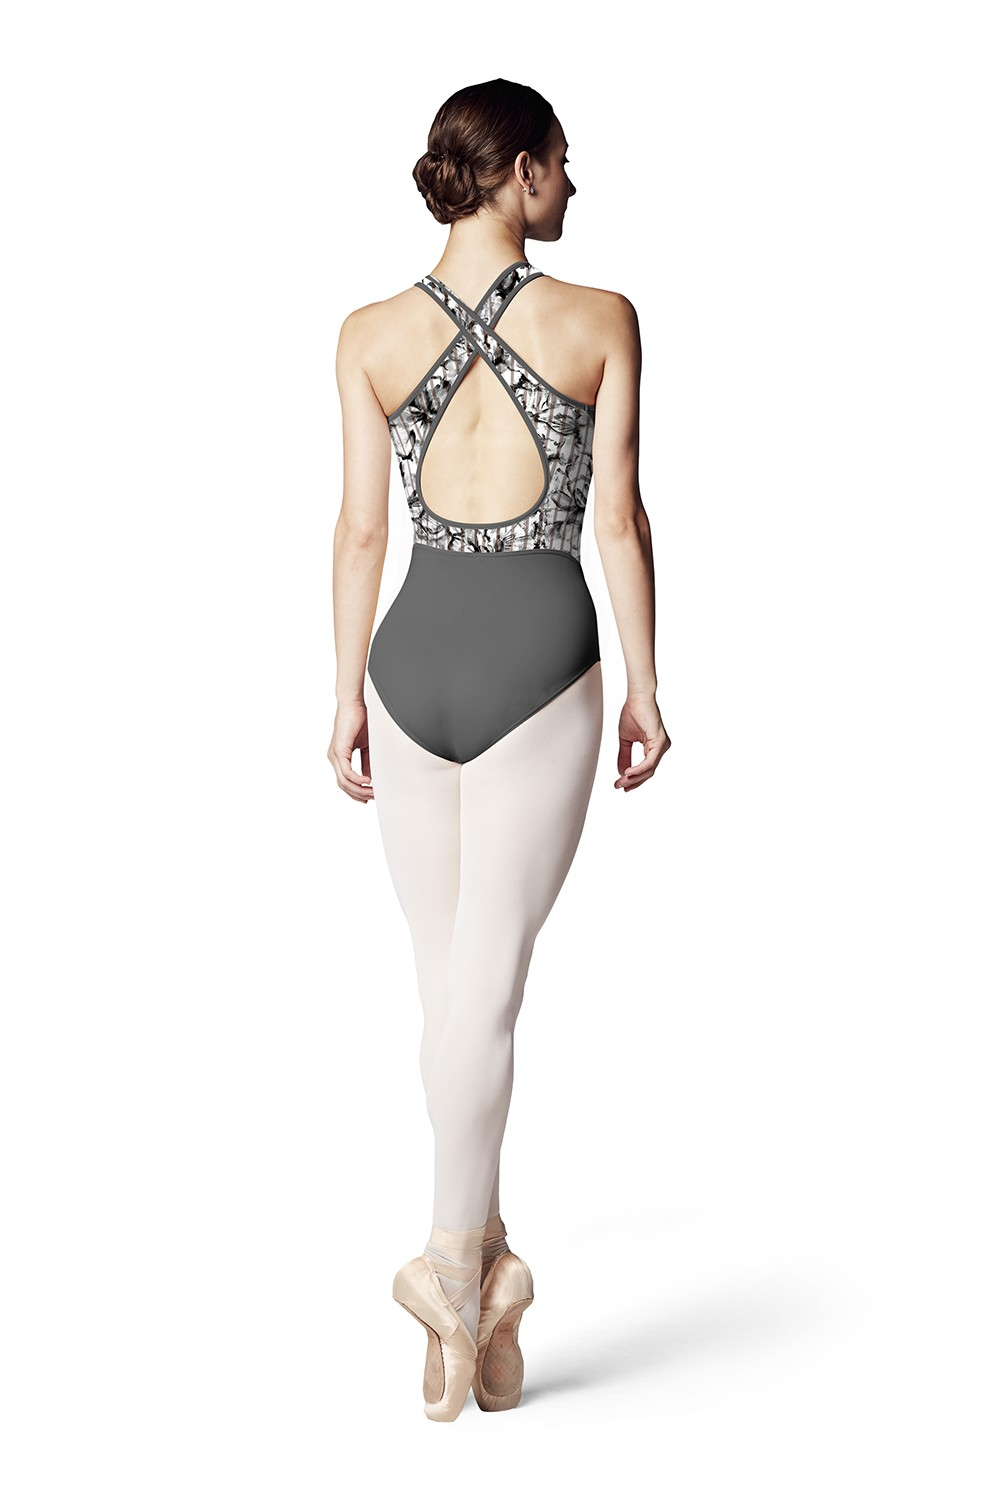 Callie Women's Dance Leotards